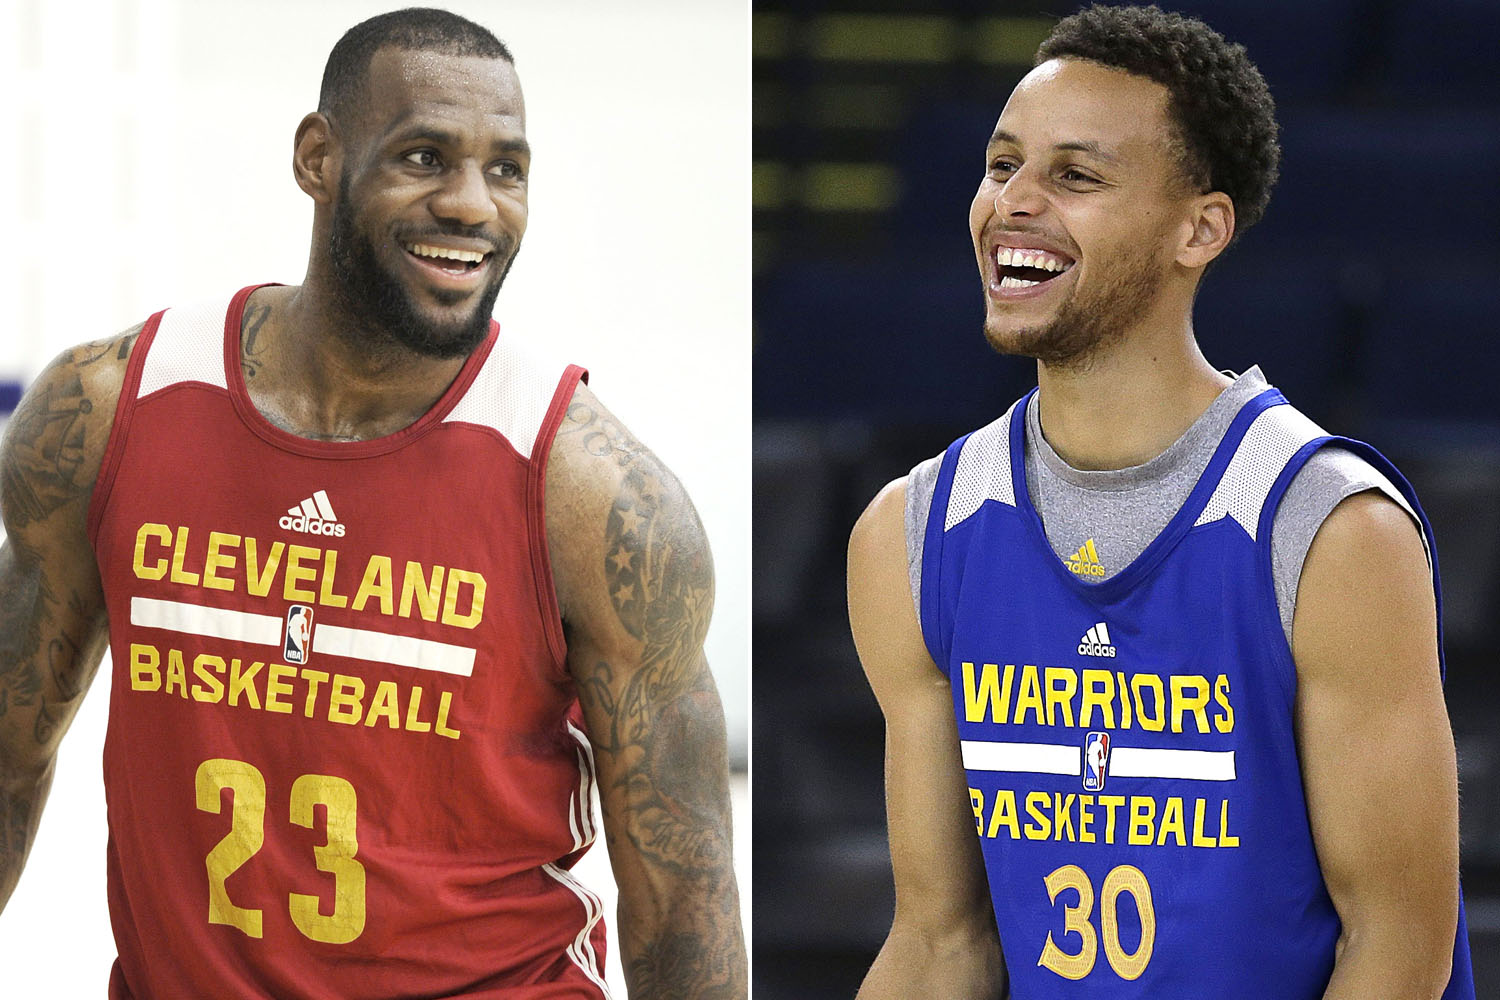 Lebron James vs Stephen Curry